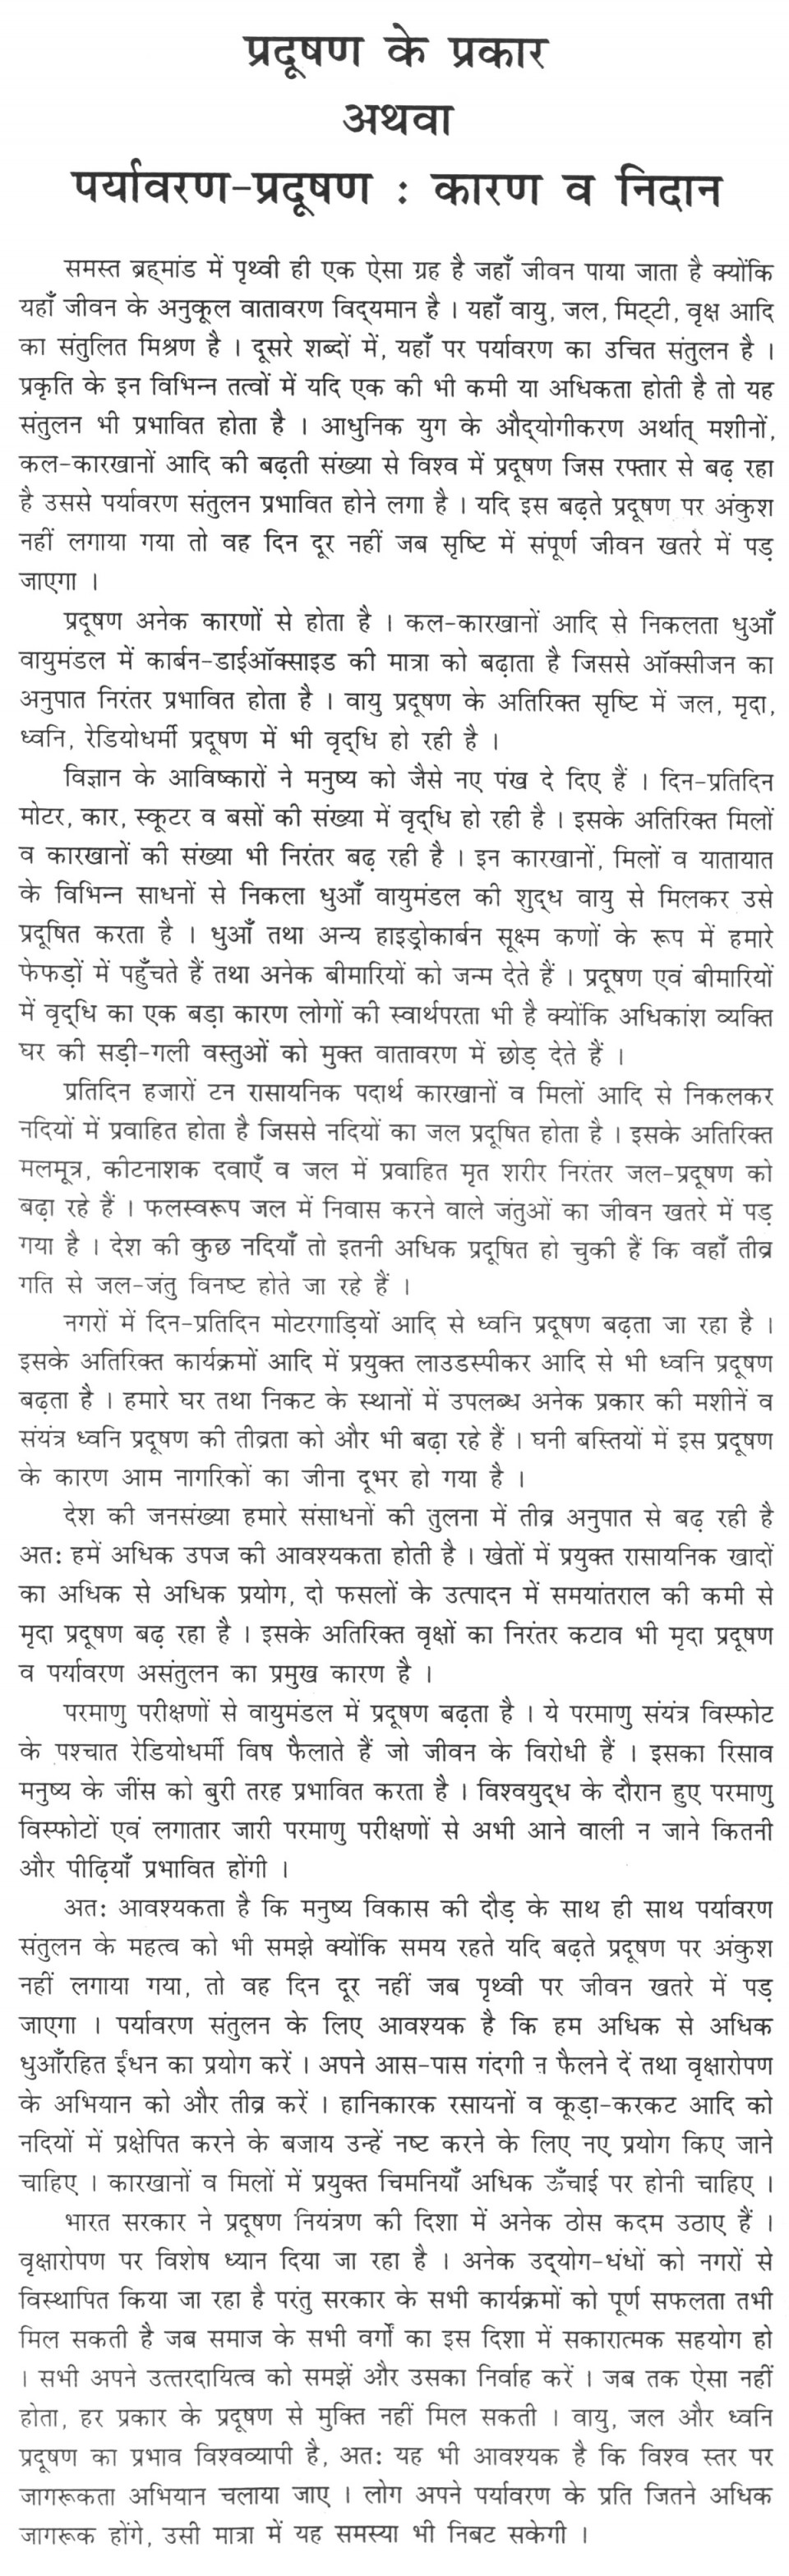 014 Good Habits Essay In Hindi Exceptional Habit Wikipedia Eating 960